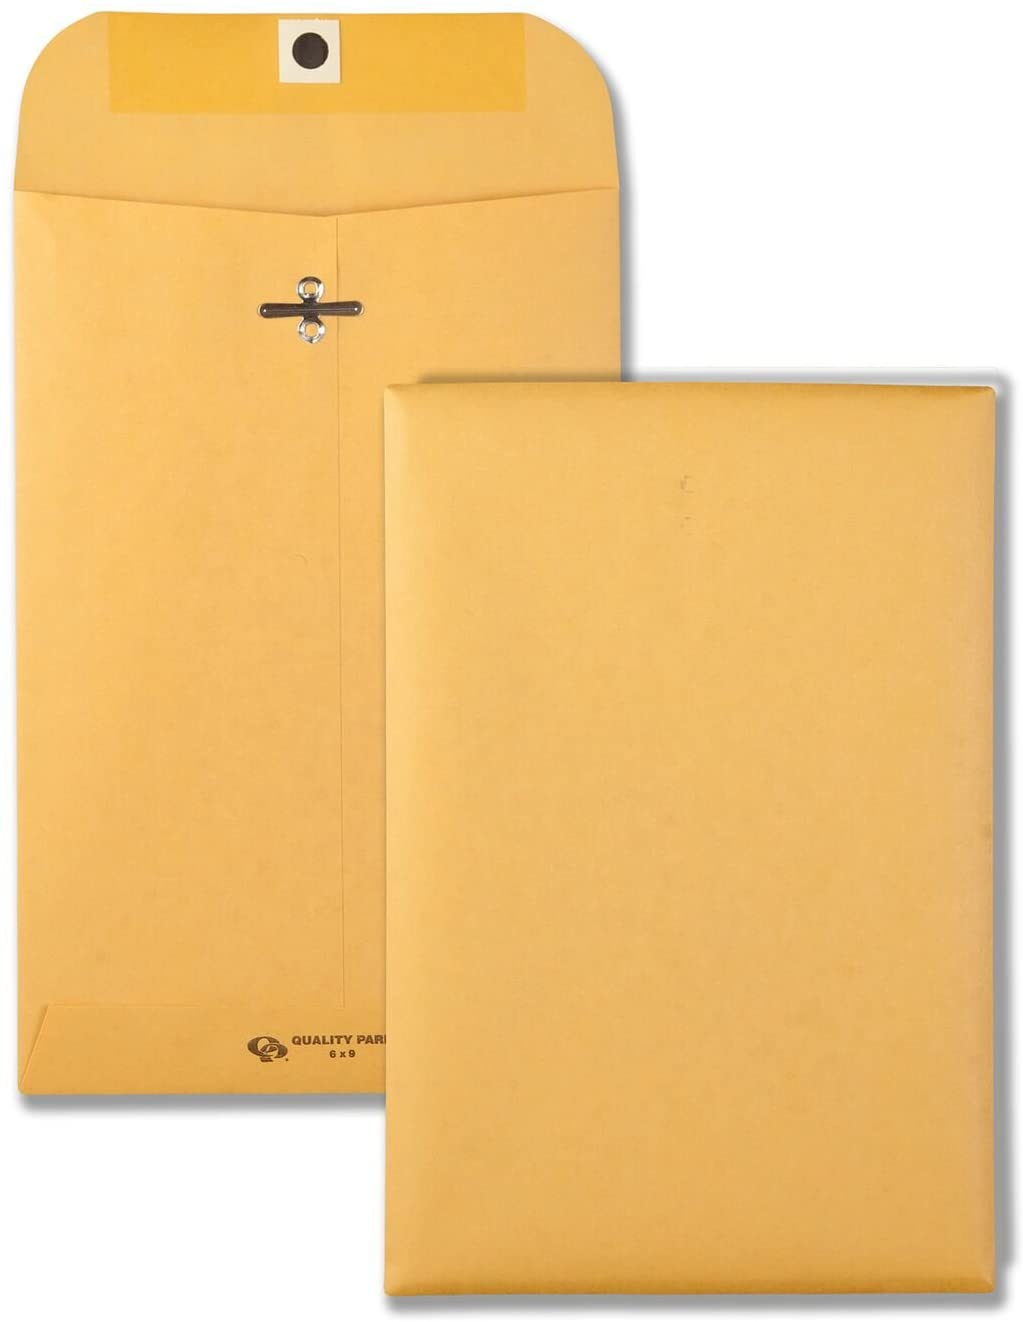 Quality Park 6 x 9 Clasp Envelopes, Clasp and Gummed Closures for Storing or Mailing, 28 lb Kraft Paper, 100 per Box (QUA37855) : Office Products